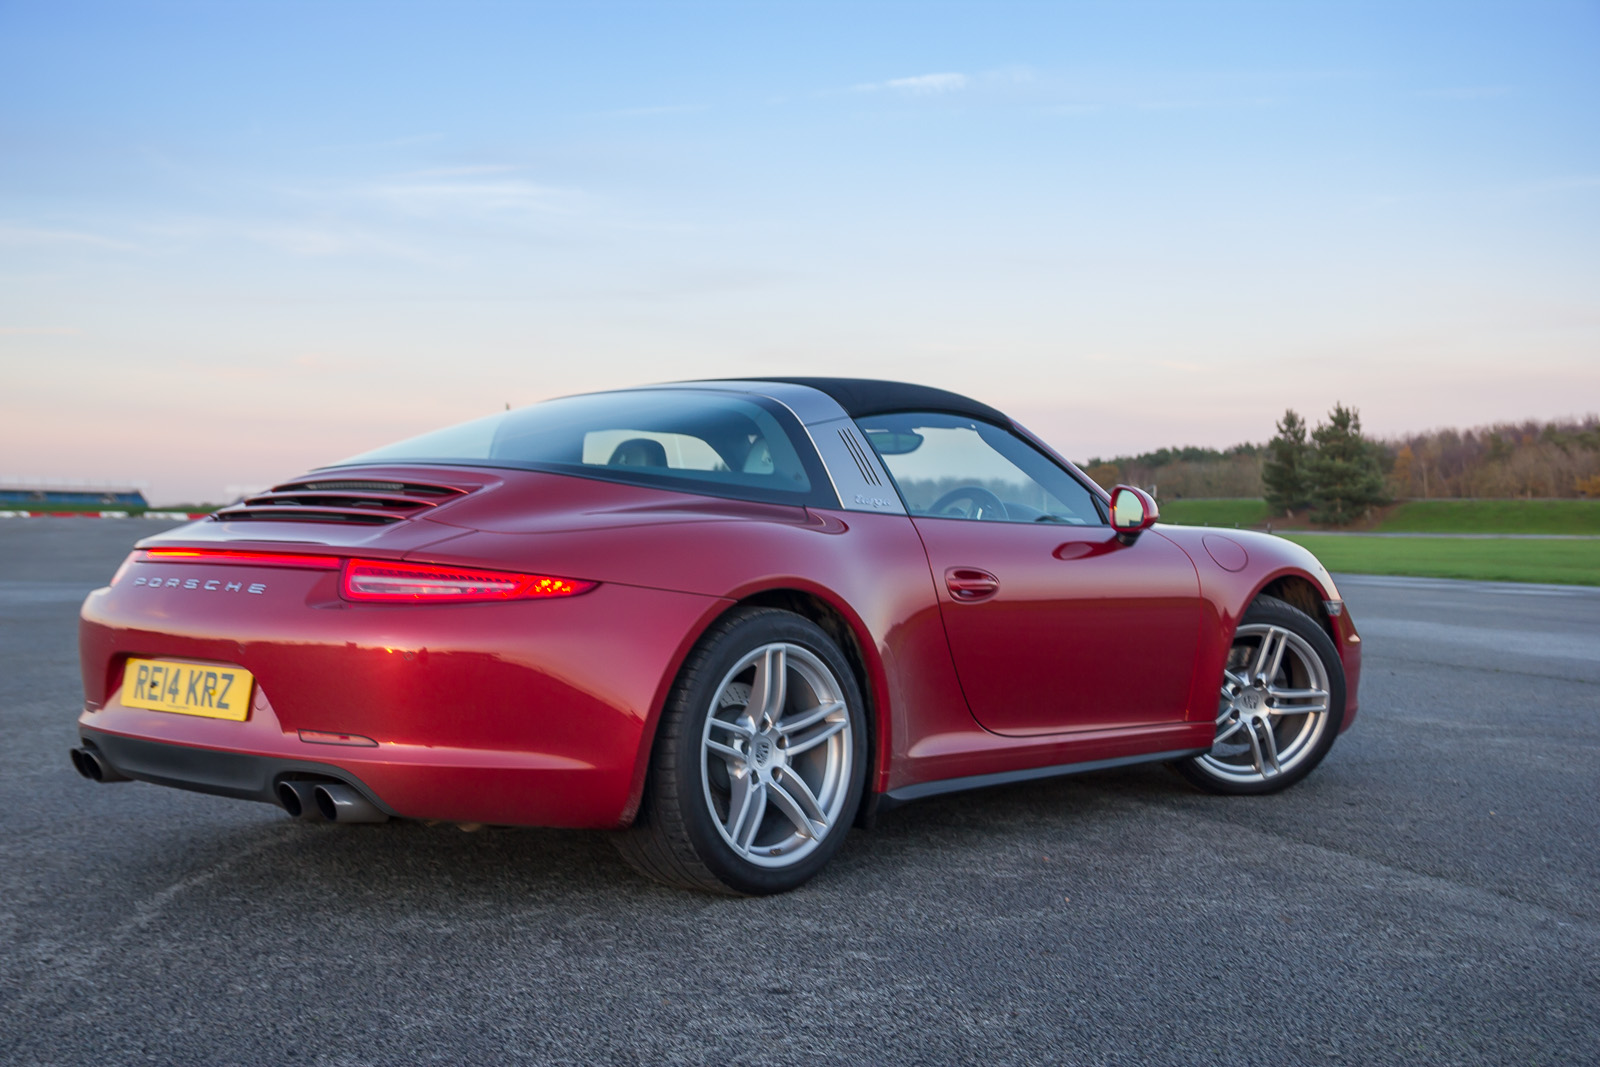 2019 Porsche 911 Targa 4 photo - 1